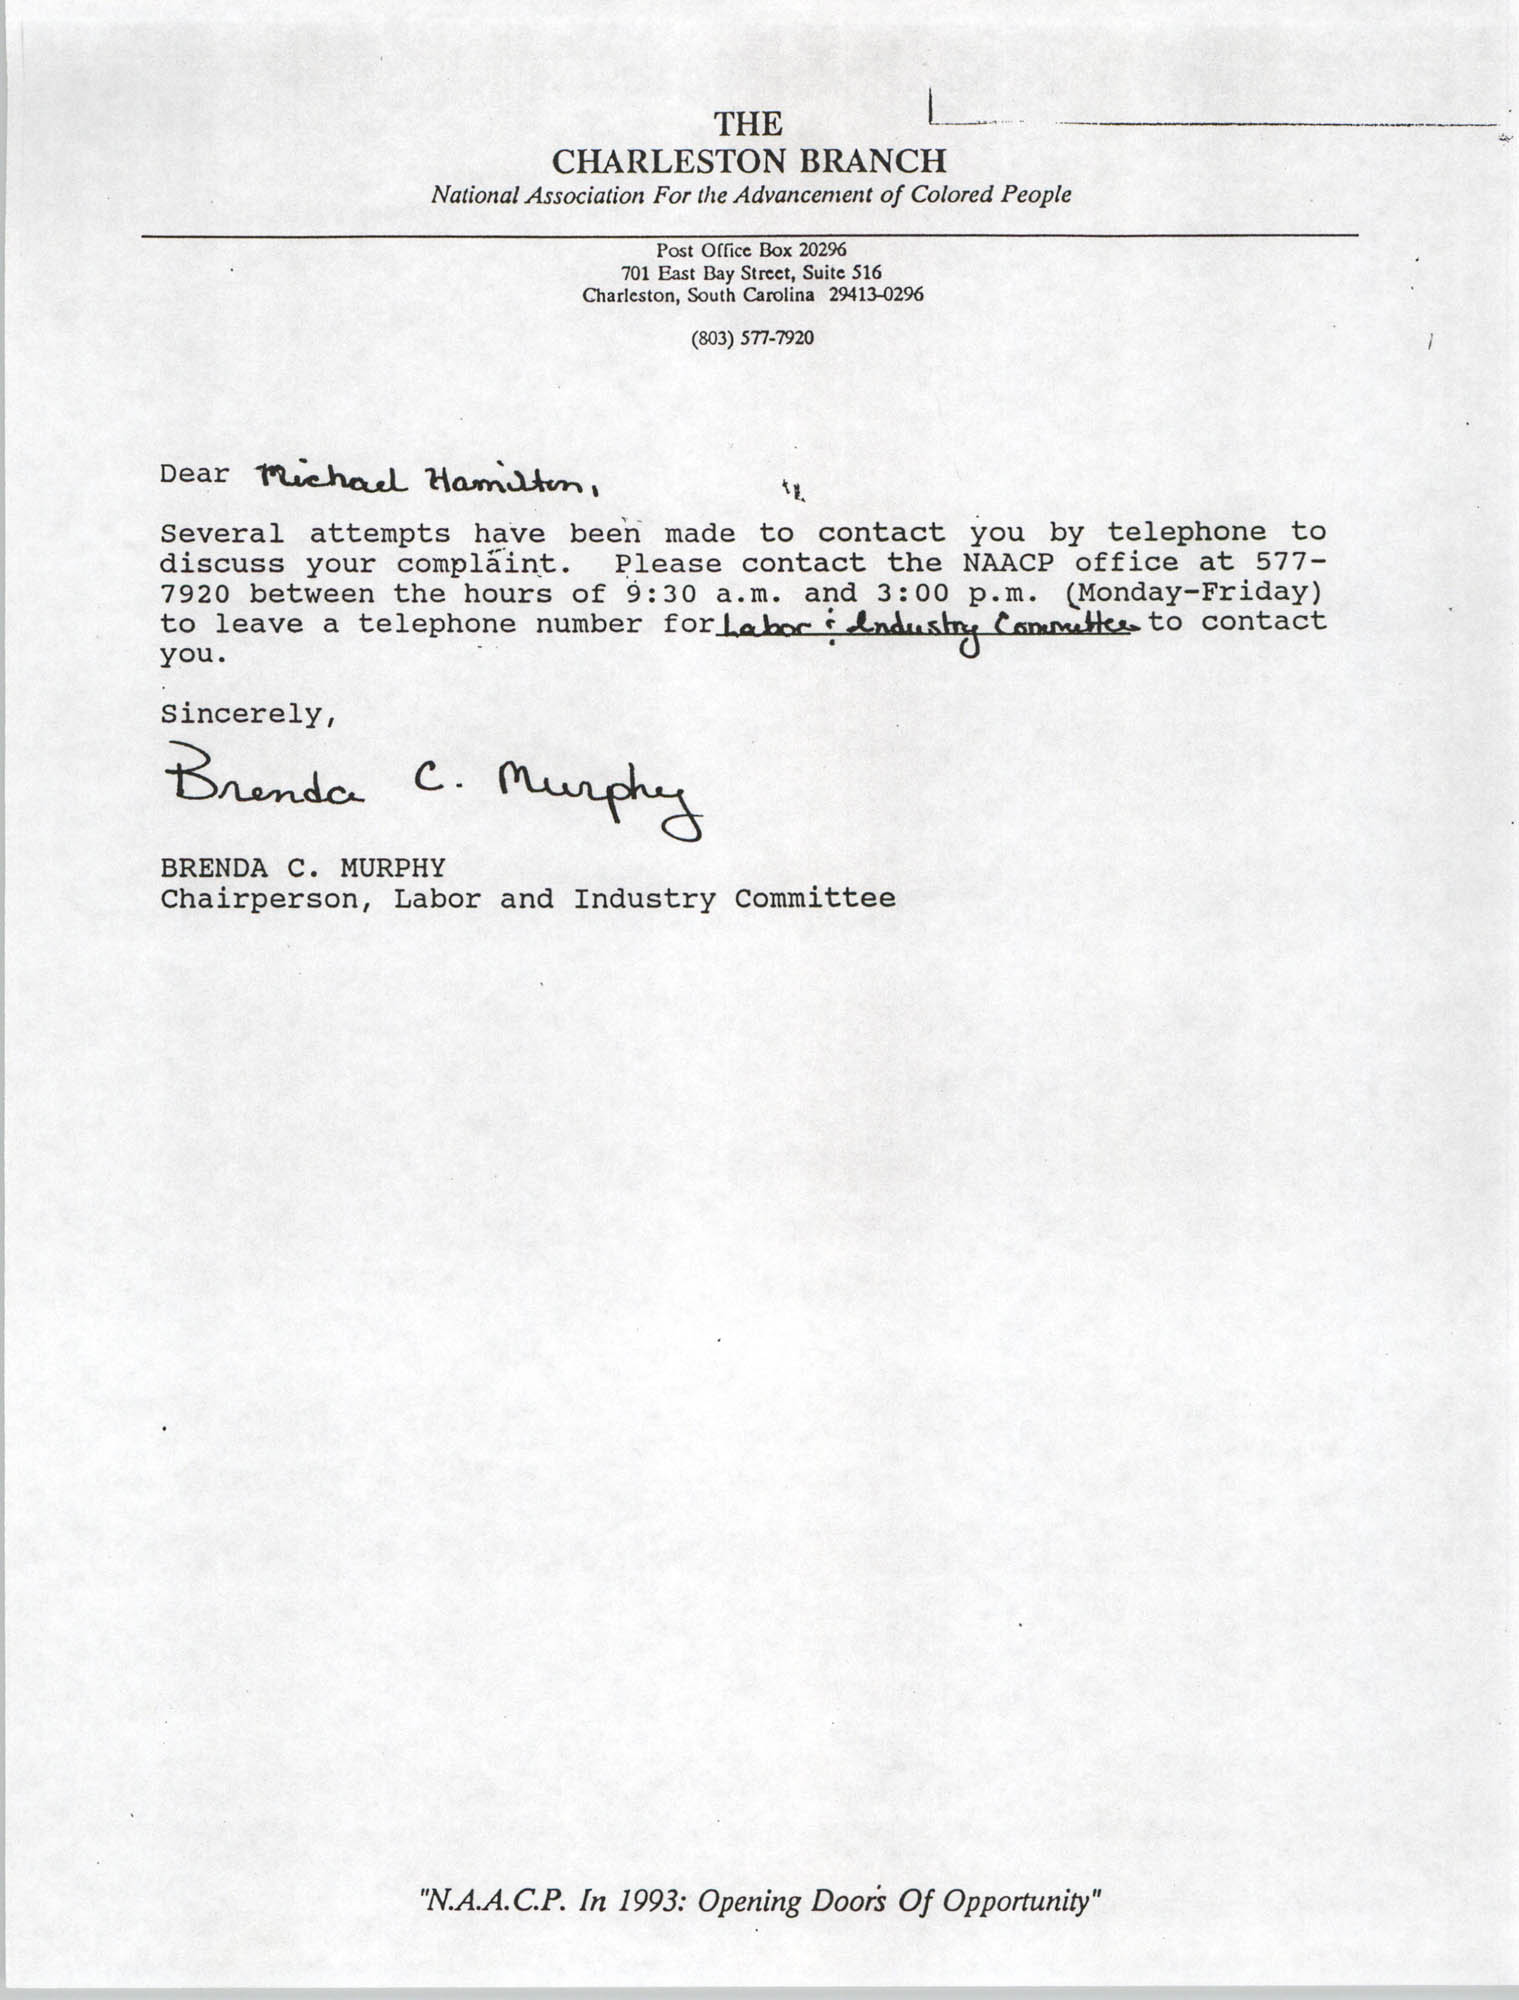 Letter from Brenda C. Murphy to Michael Hamilton